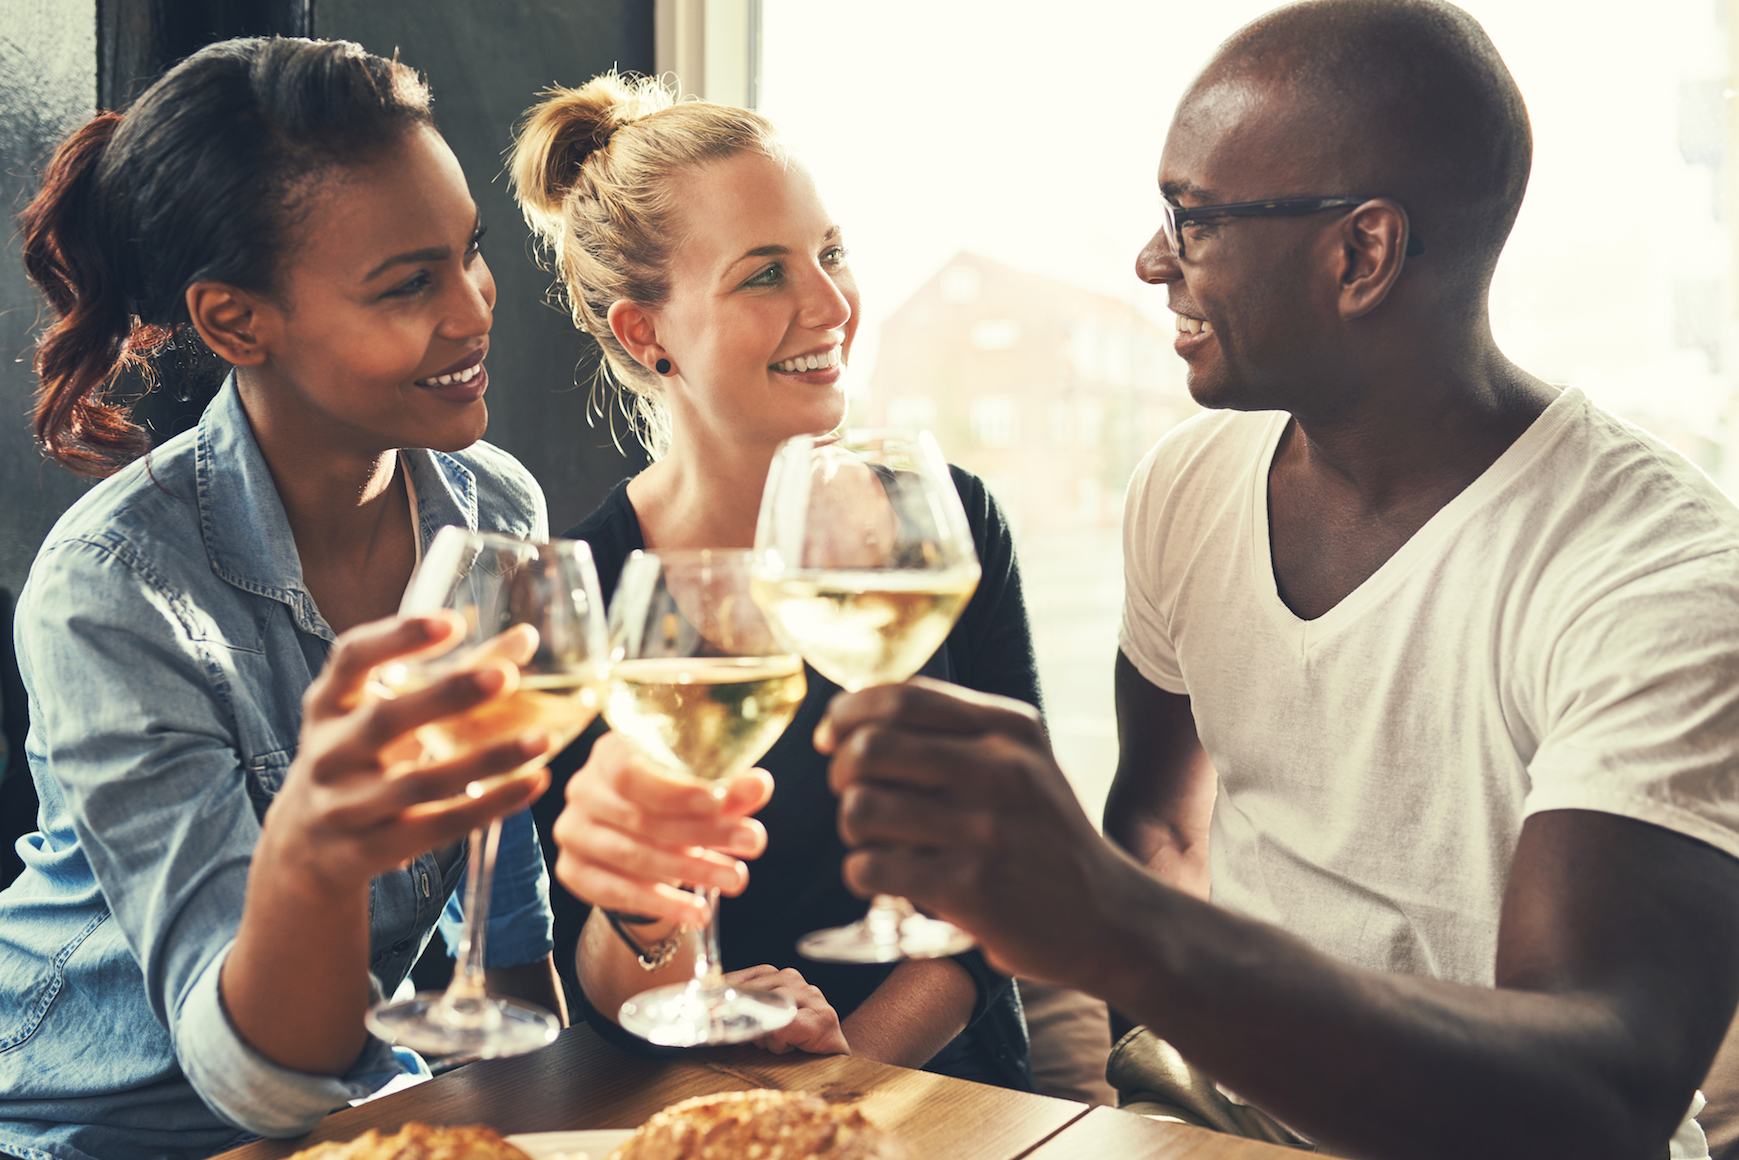 A new study from University of Rochester Medical Center has shown that low levels of alcohol can be good for the brain.